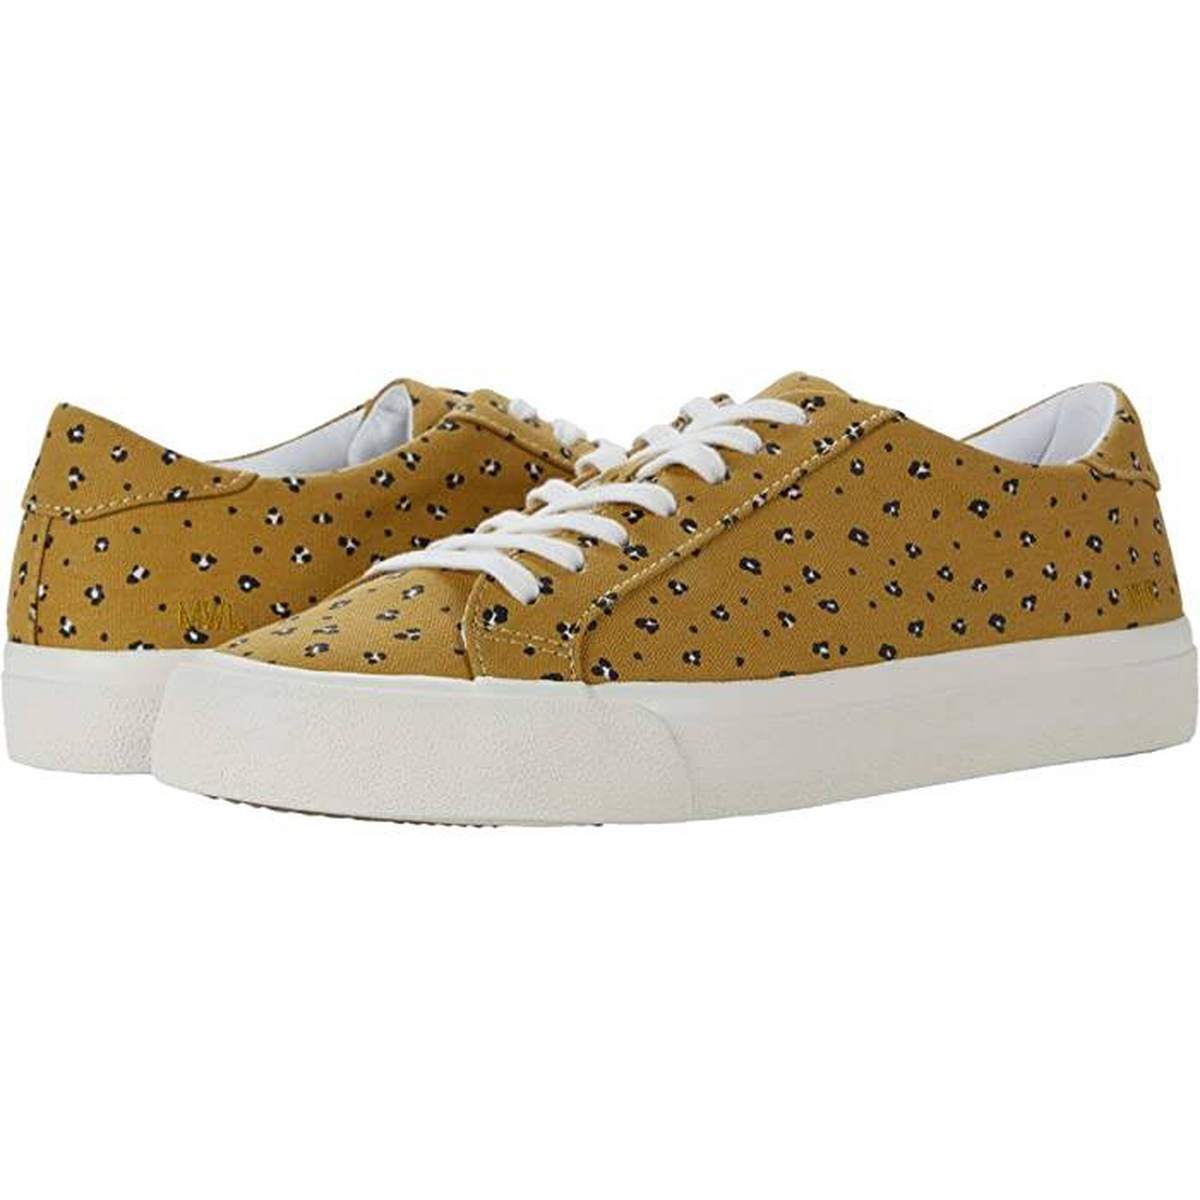 Purchase Madewell sidewalk low top canvas printed sneakers womens 2021 new luxury single shoes